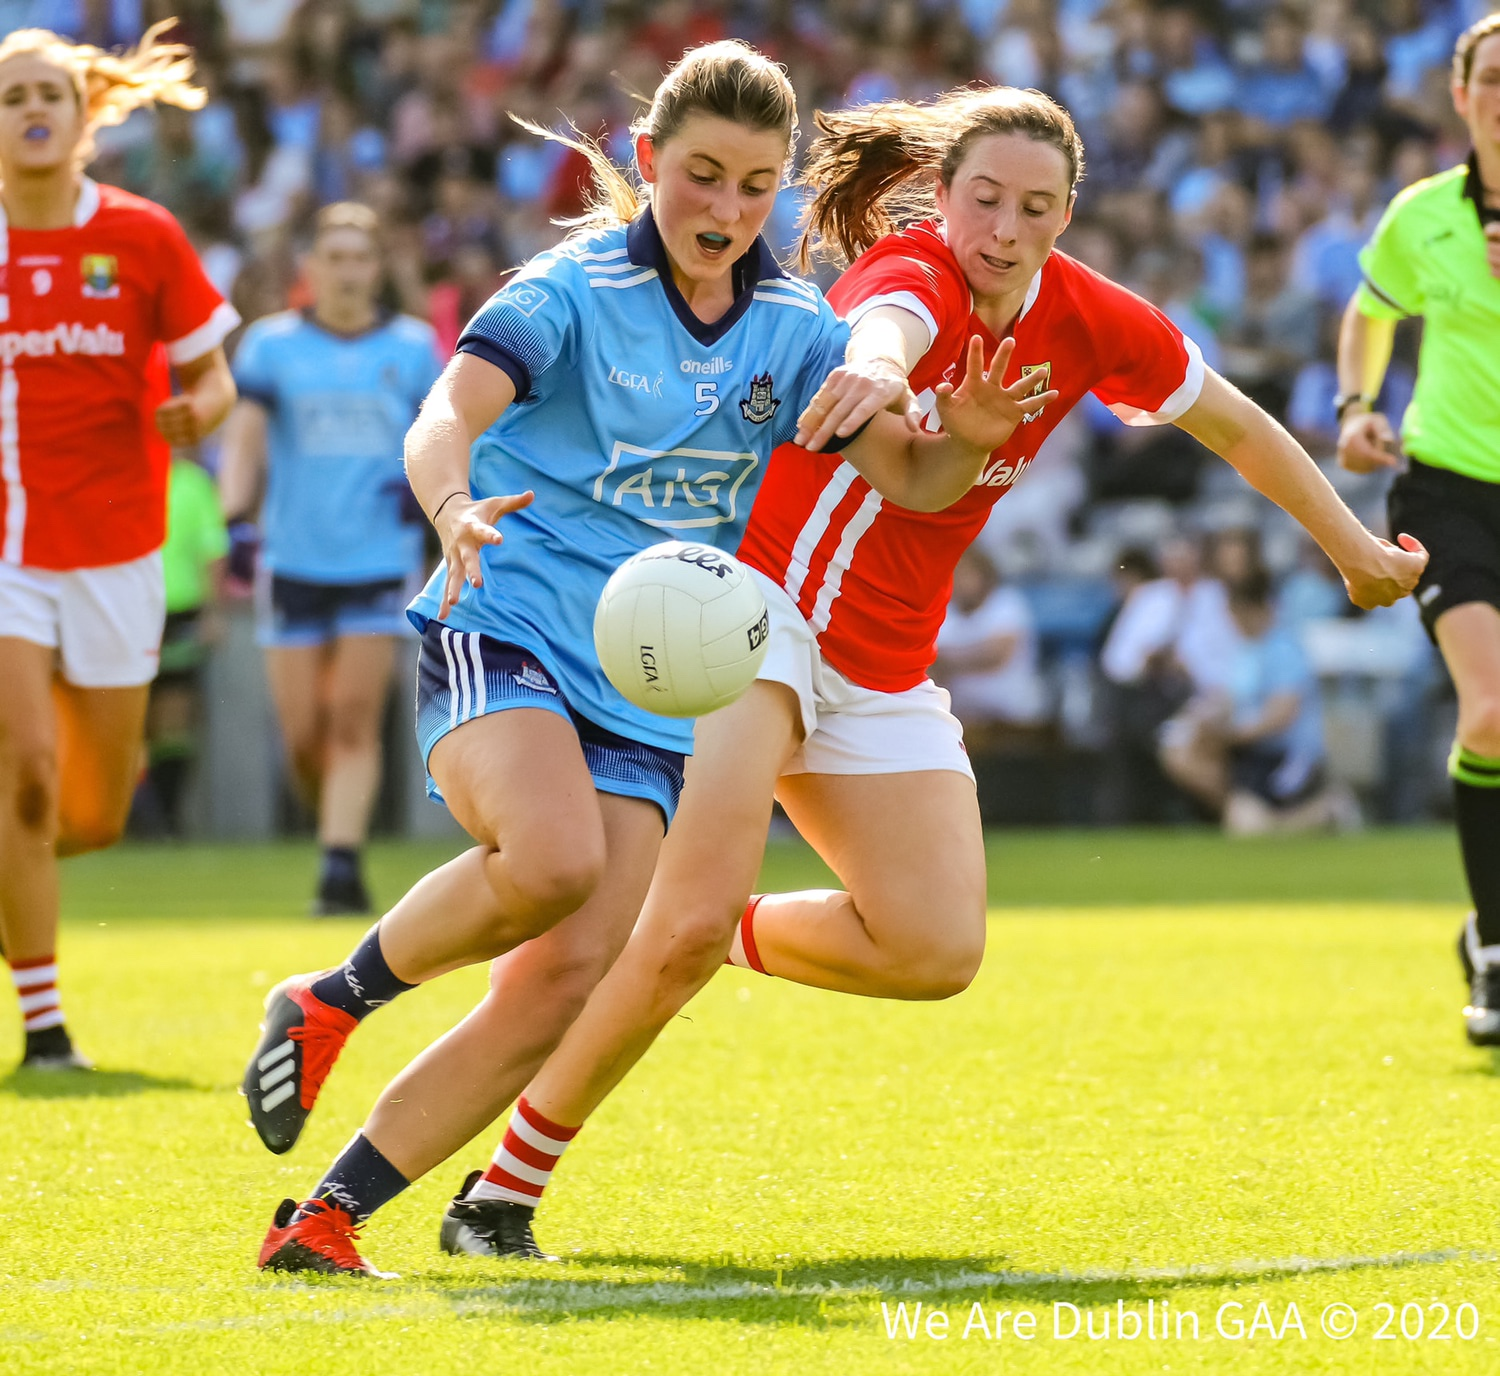 Dublin's Aoife Kane in action against Cork in last years All Ireland championship both sides meet again on Sunday as the Intermediate and Senior All Ireland ladies football championships come to a conclusion